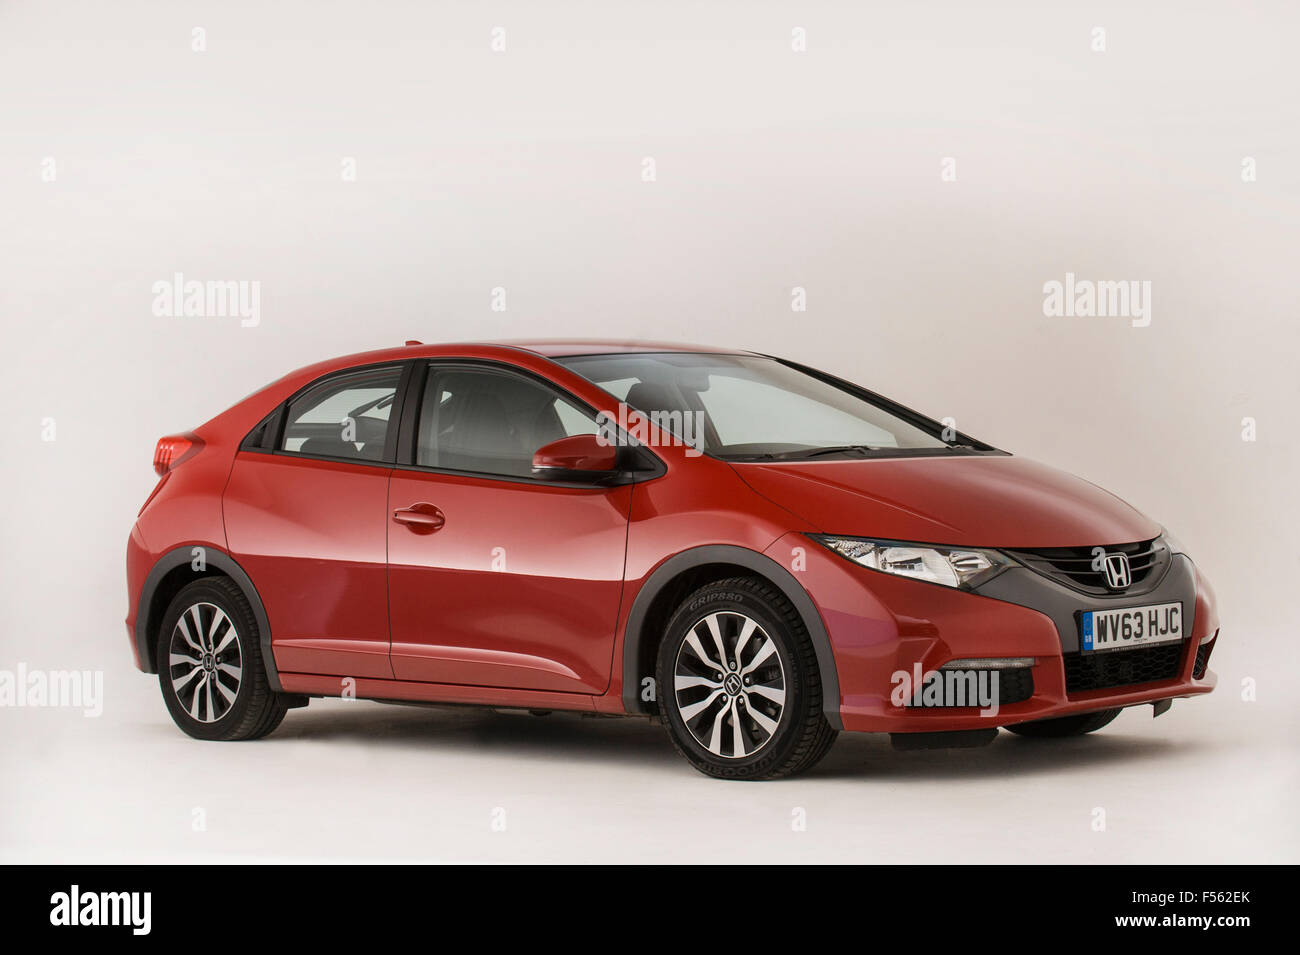 2013 Honda Civic - Stock Image